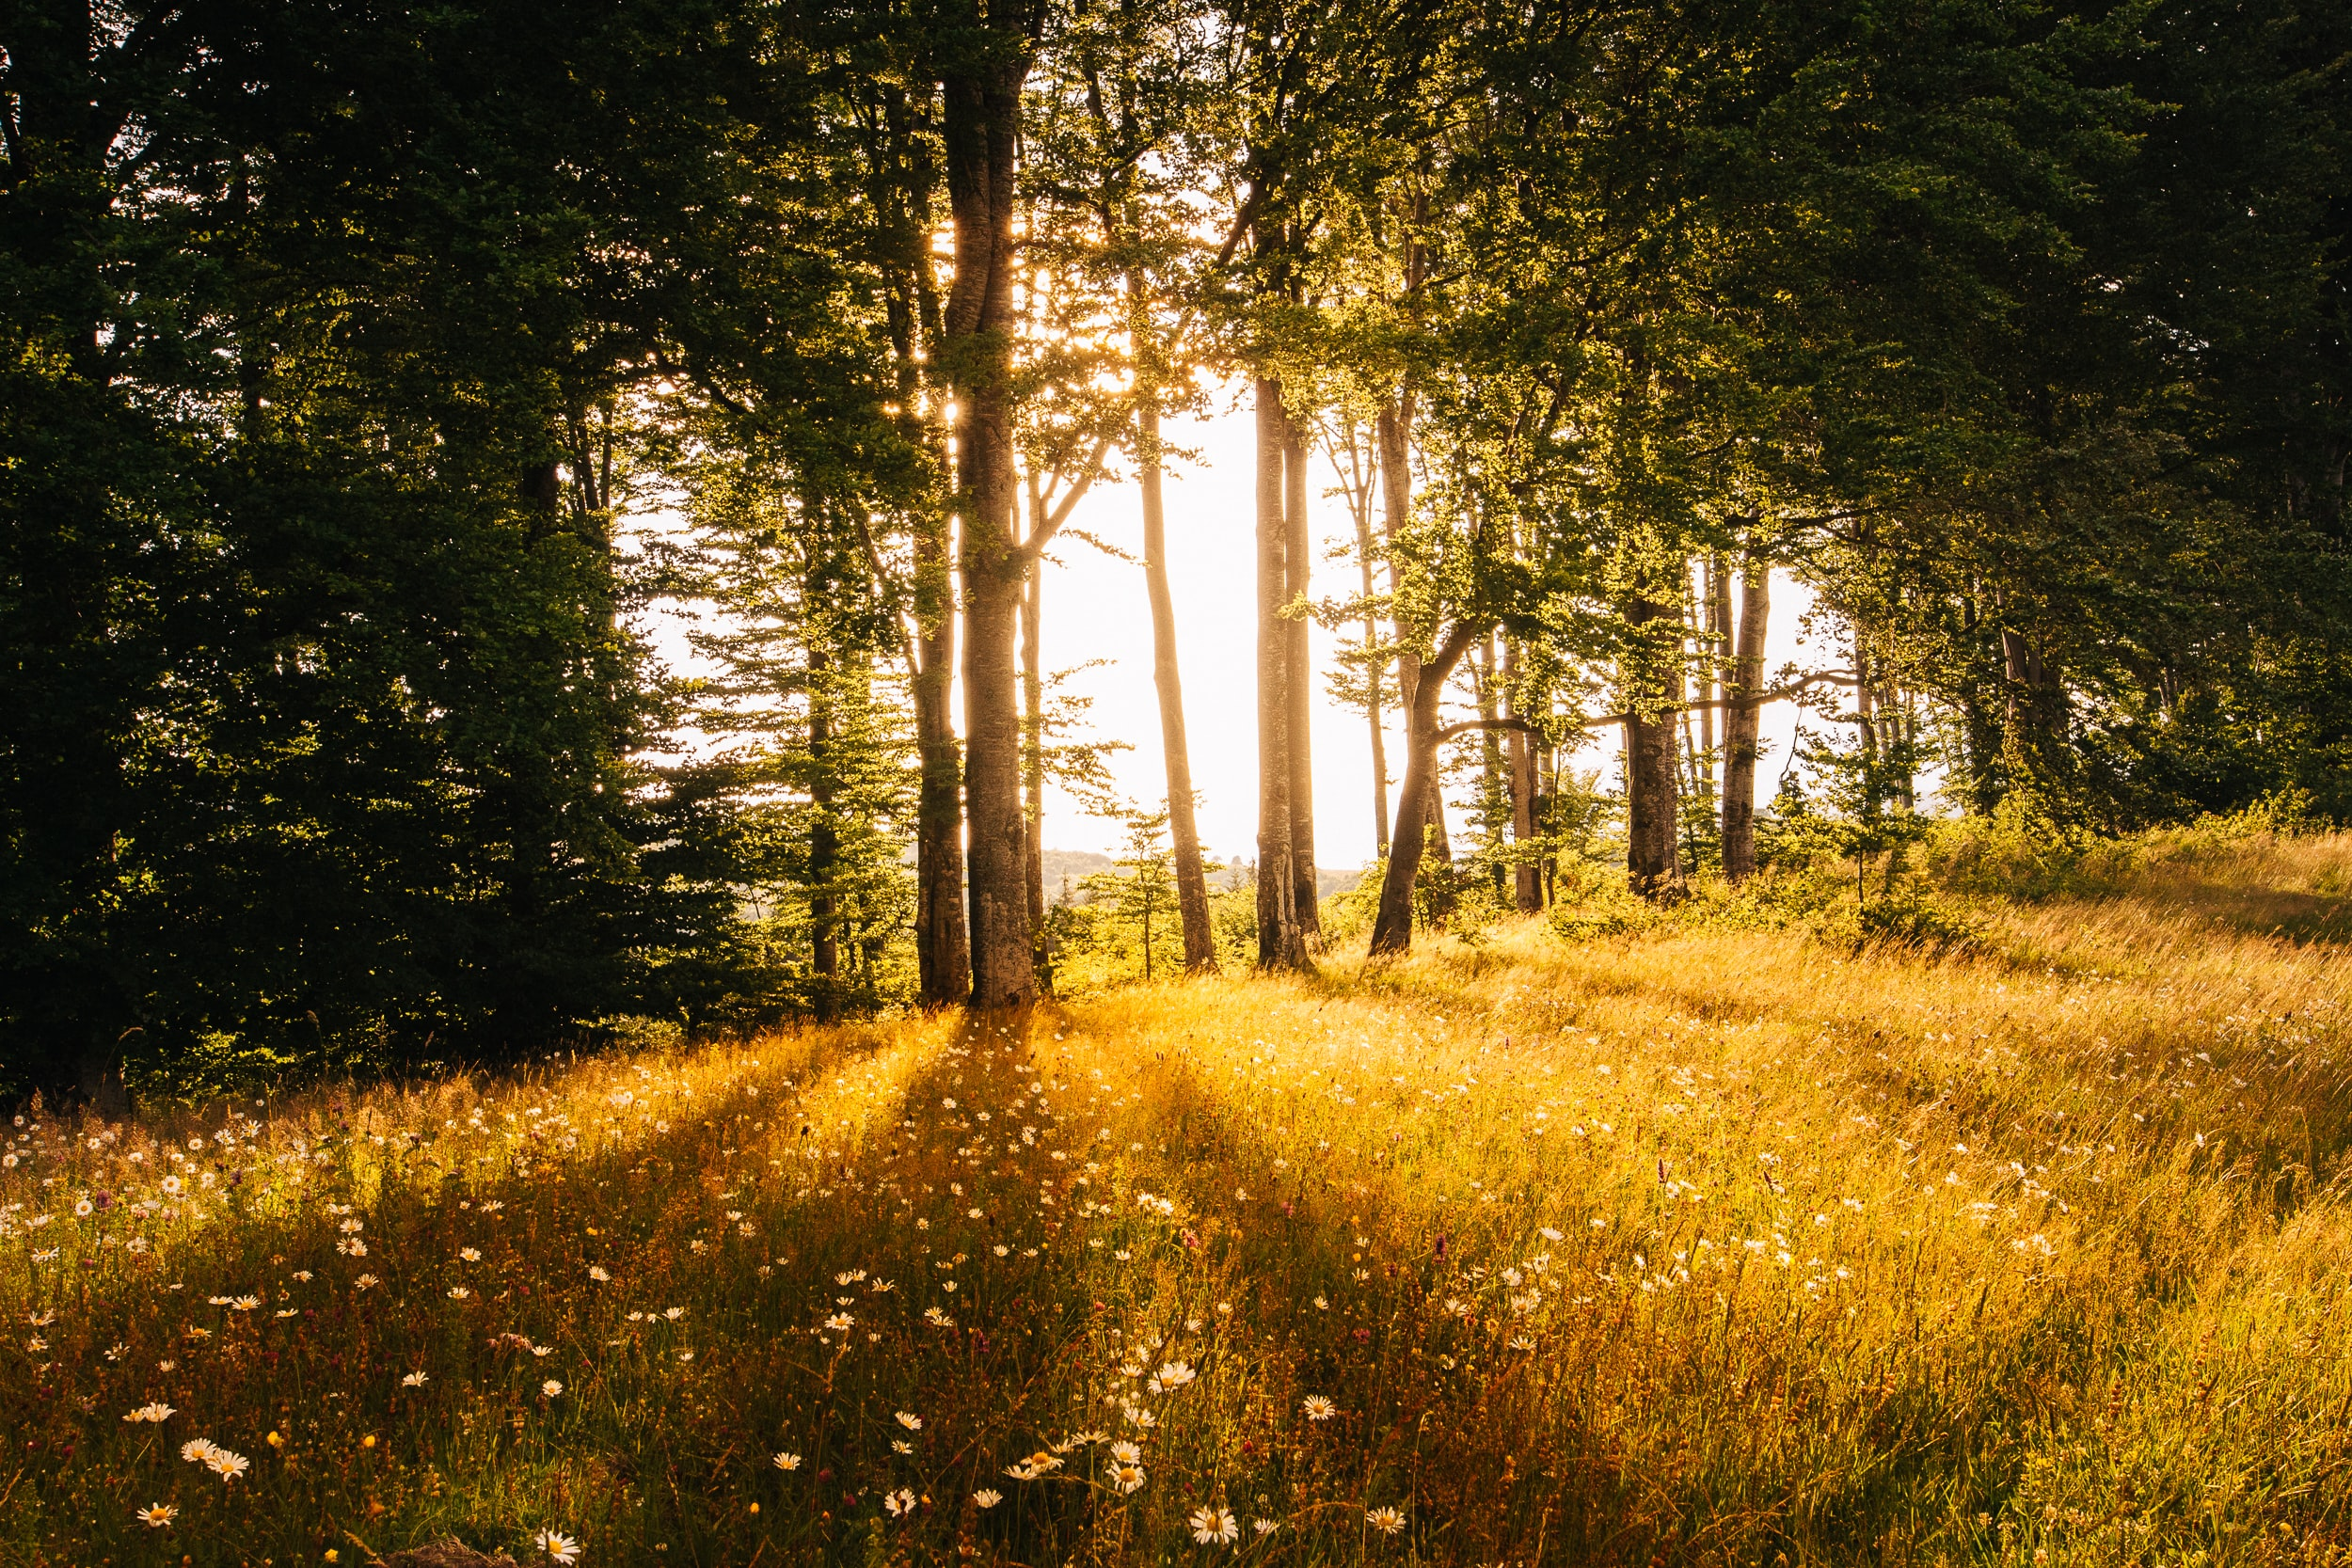 A copse of trees near a meadow during the golden hours